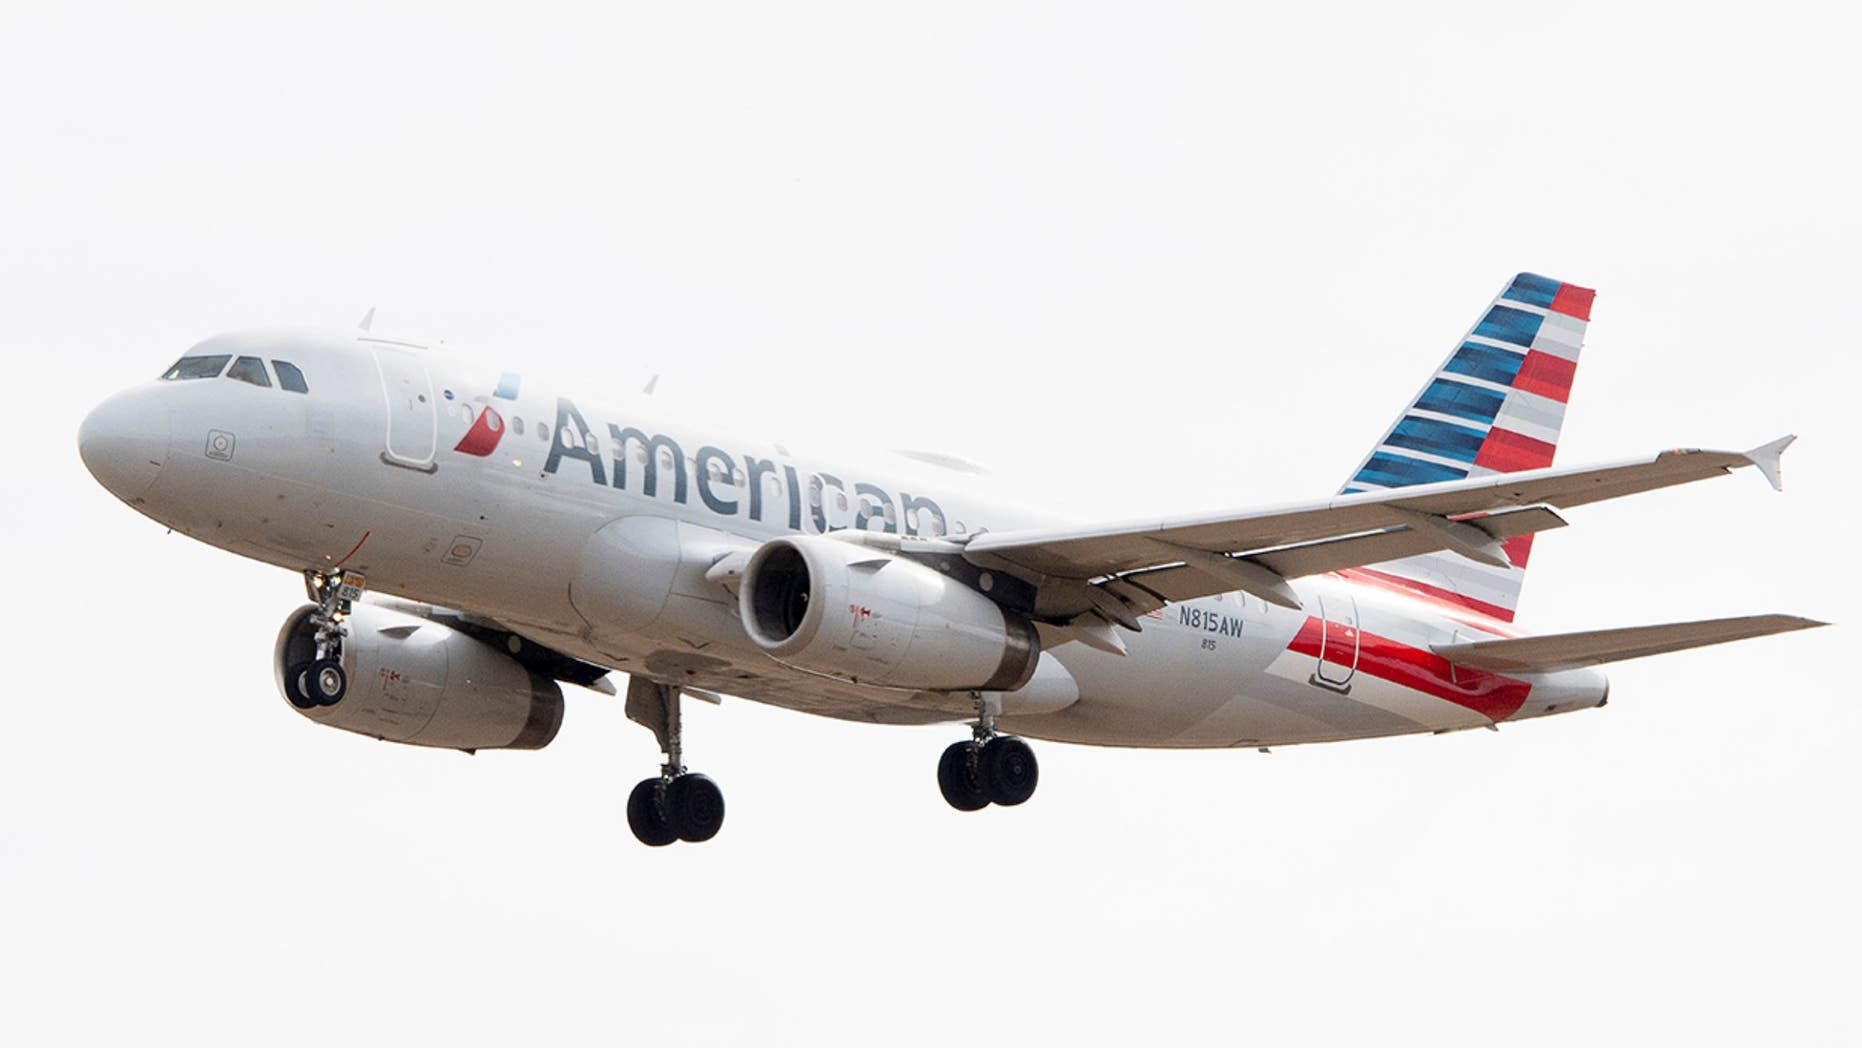 An American Airlines flight was diverted to Chicago while traveling to New York City from San Francisco after its bathrooms became unusable.